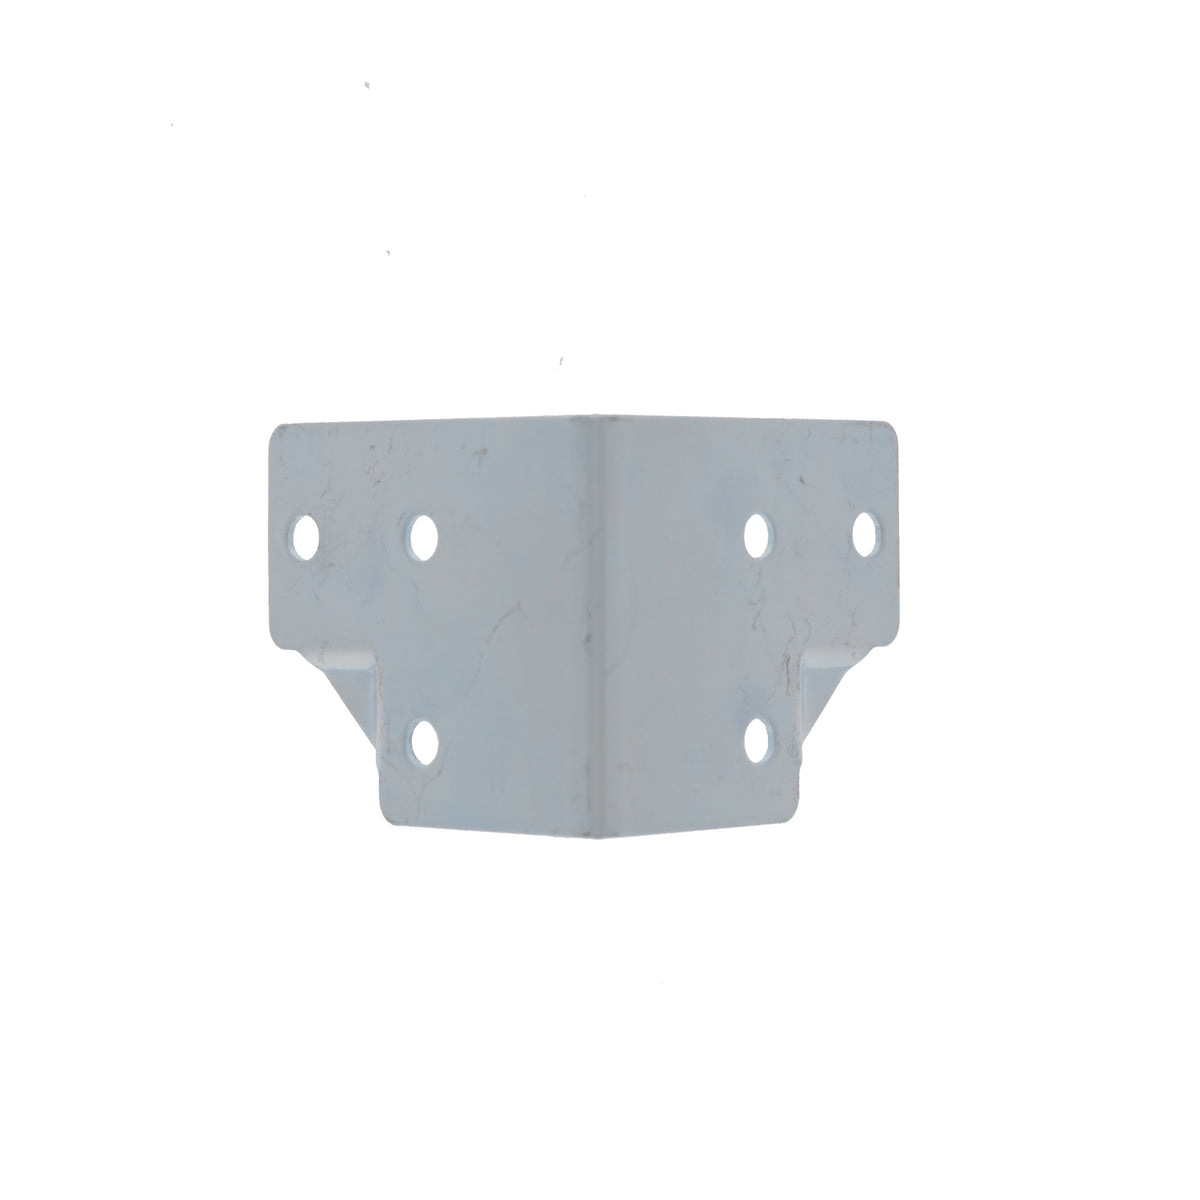 "1-1/16"" Large Offset Clamp"